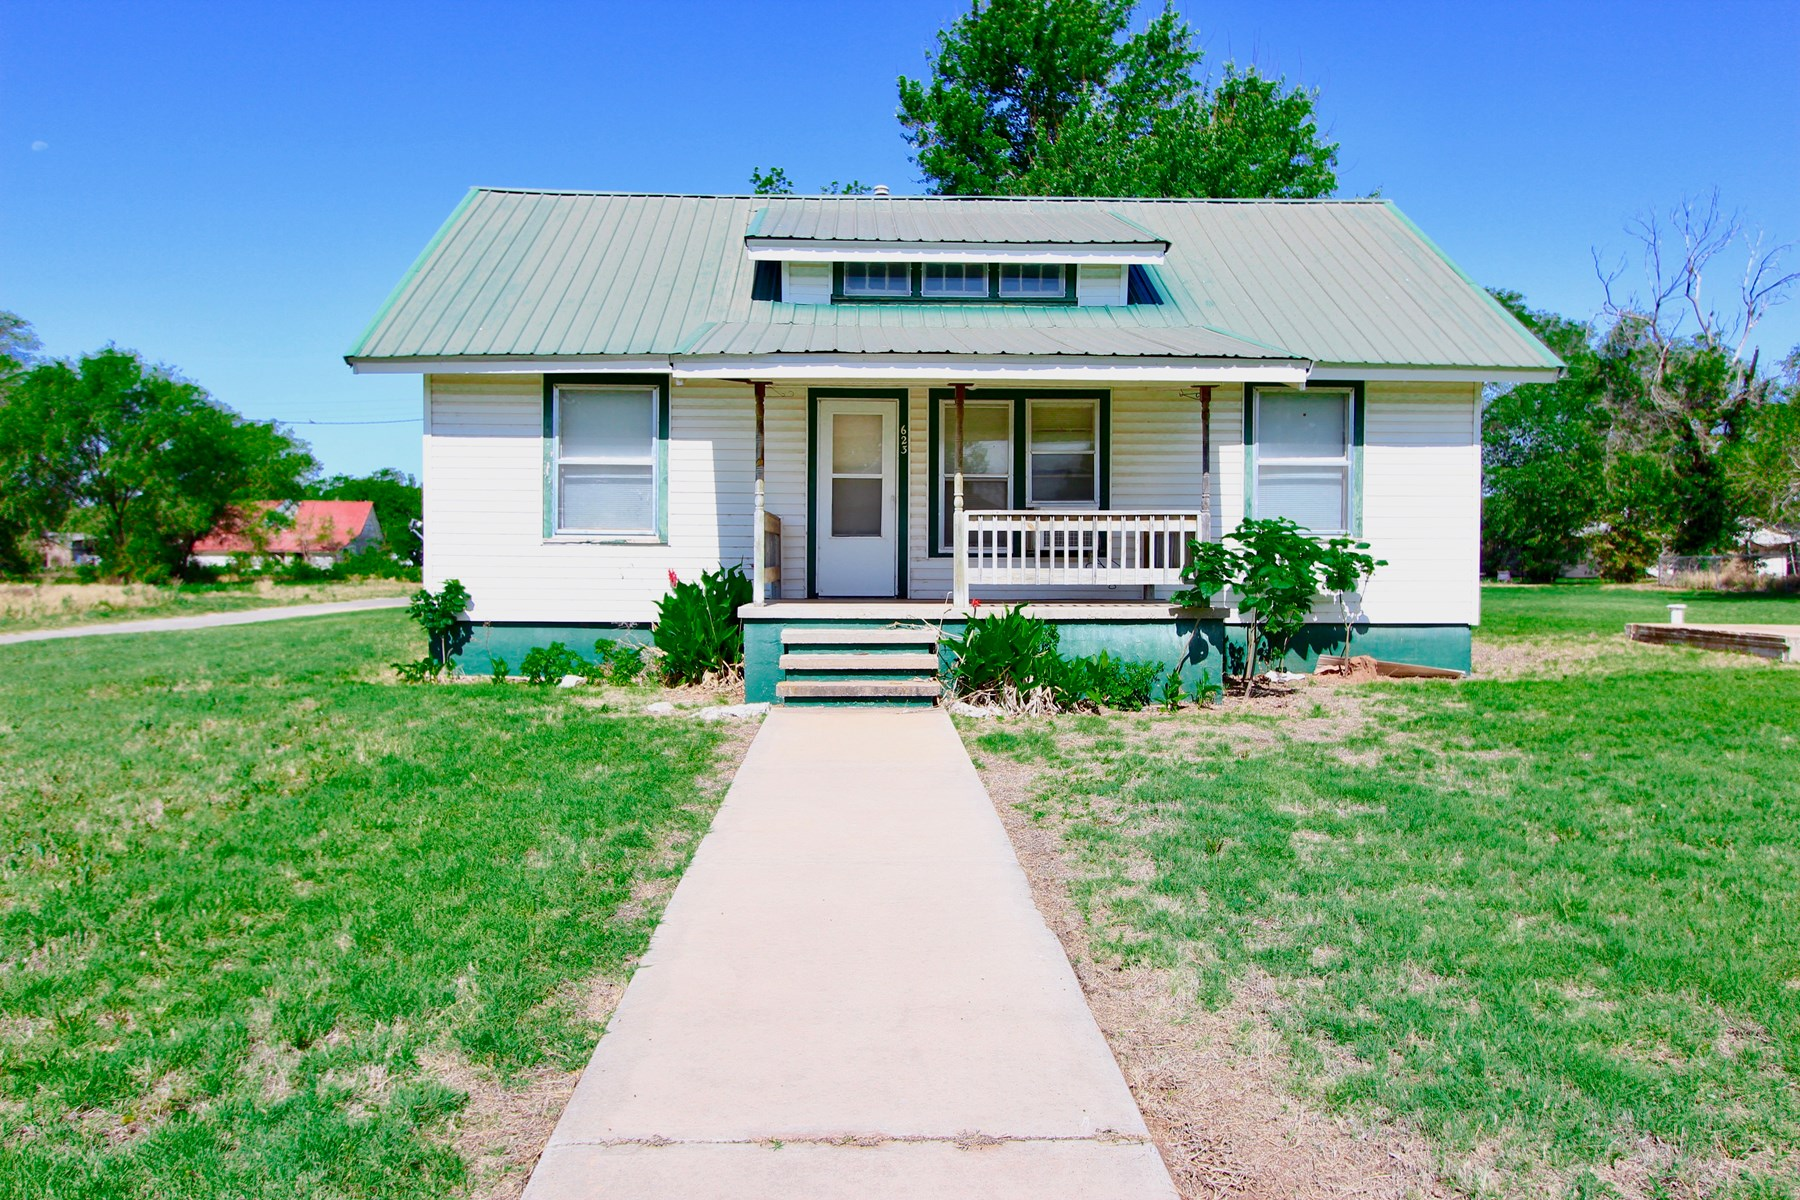 MOVE IN READY 3 BEDROOM, 2 BATH HOME in Erick, OK